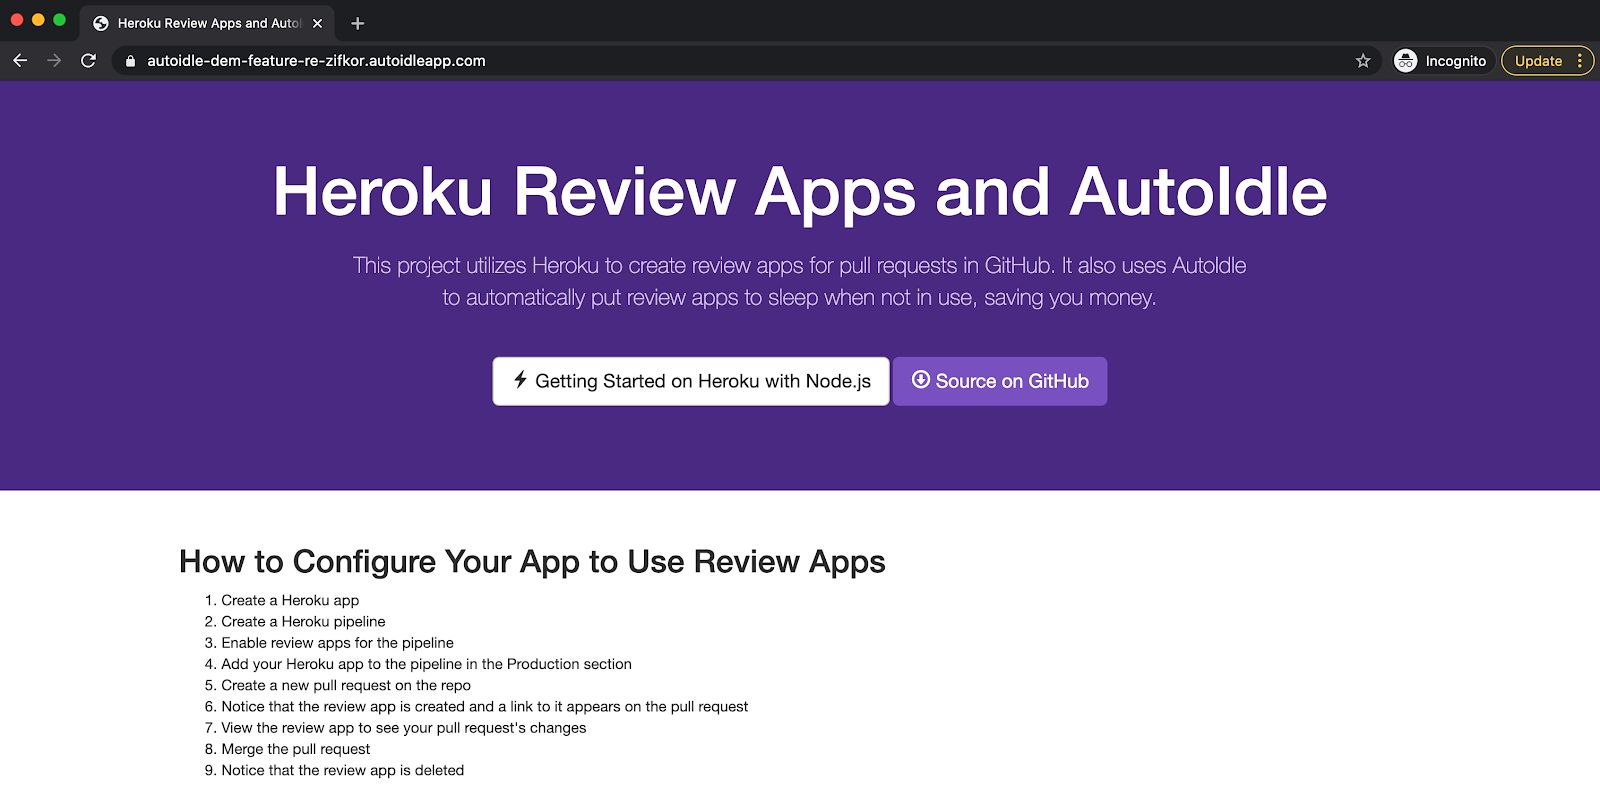 /the-ultimate-guide-to-creating-review-apps-on-heroku-36p334b feature image